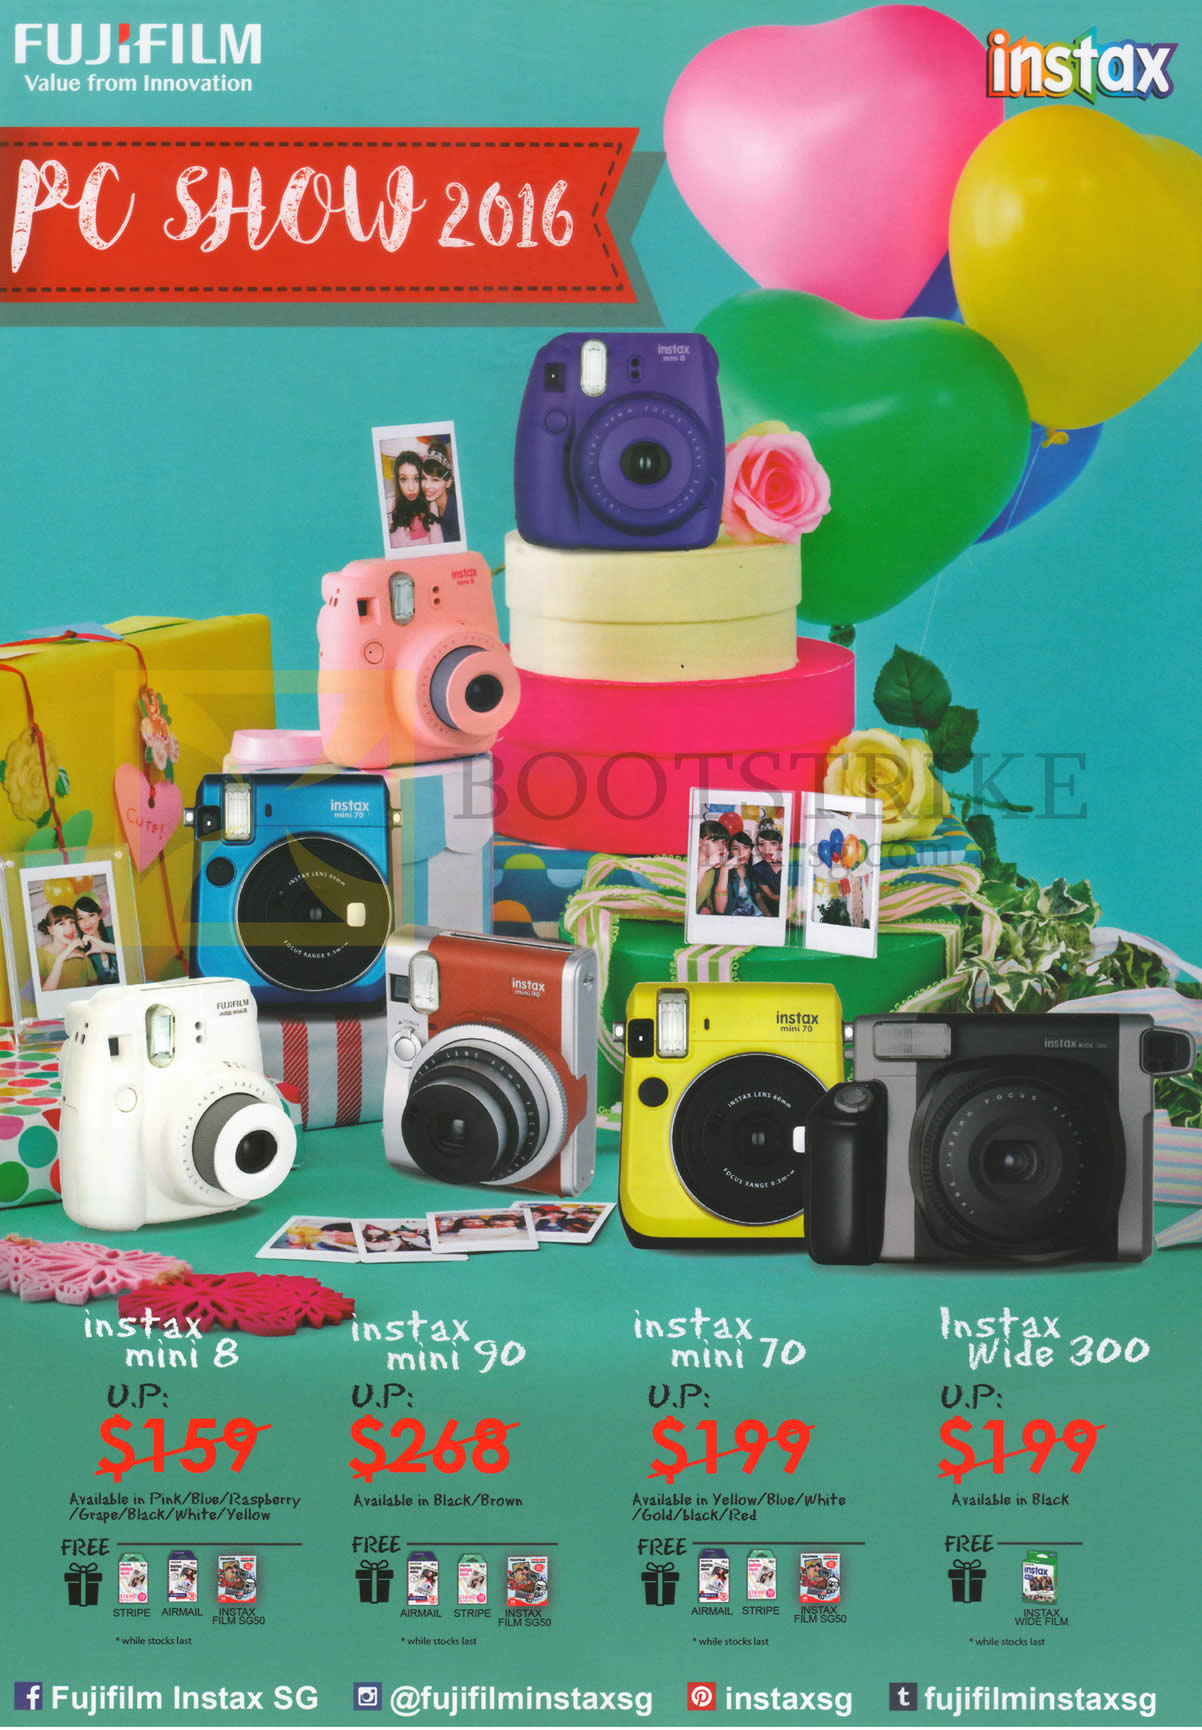 PC SHOW 2016 price list image brochure of Fujifilm Digital Cameras (No Prices) Instax Mini 8, 90, 70, Wide 300